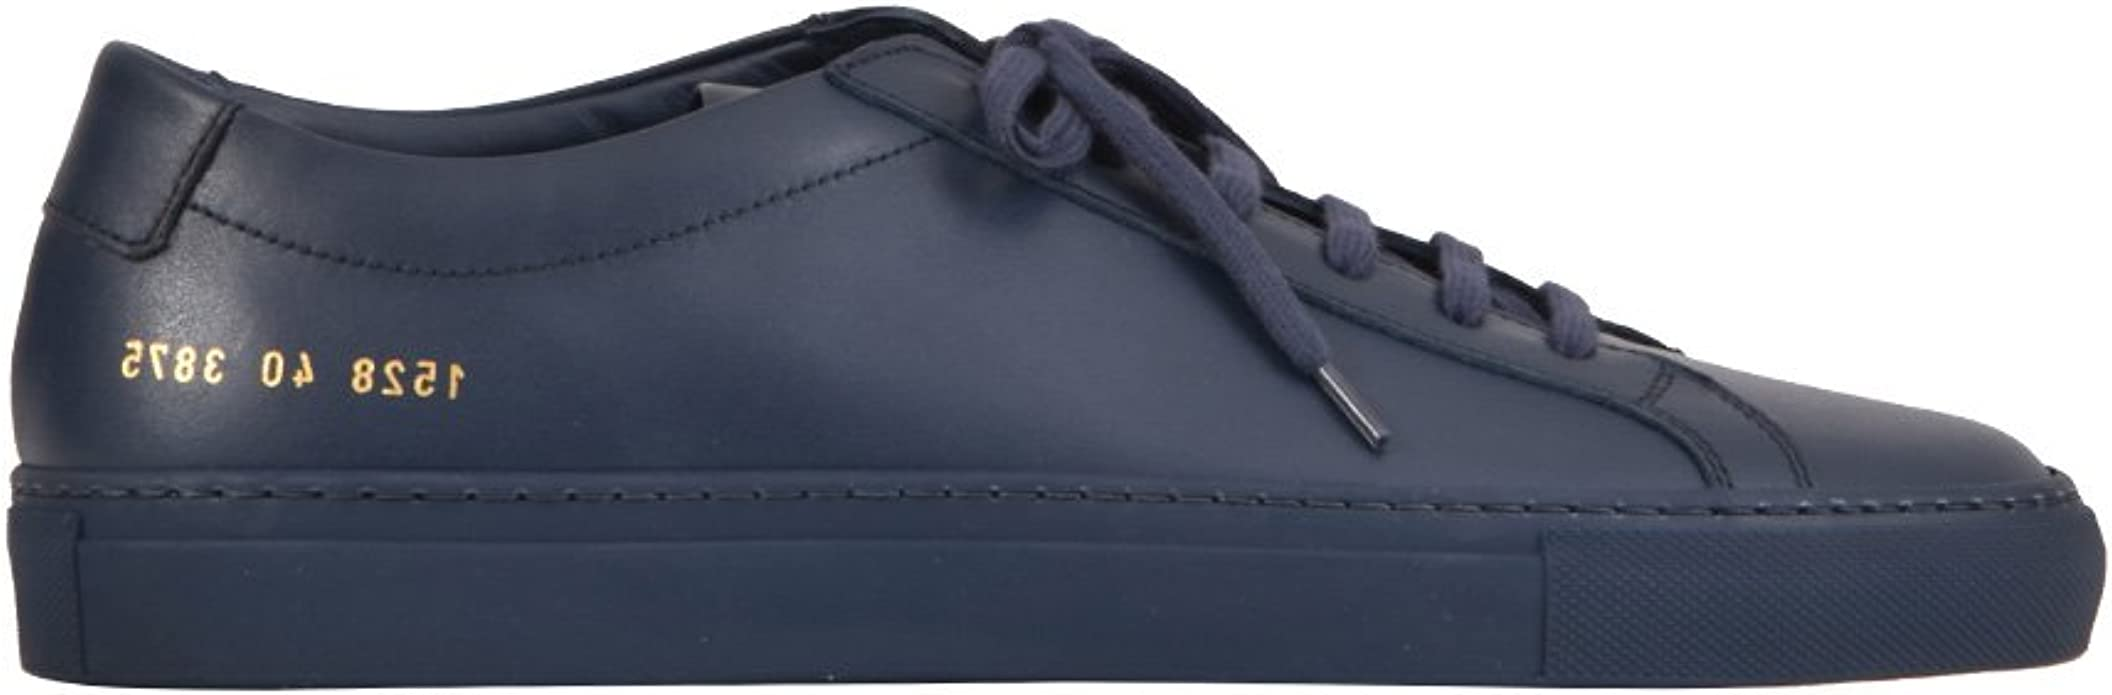 Blue Leather Sneakers: Amazon.ca